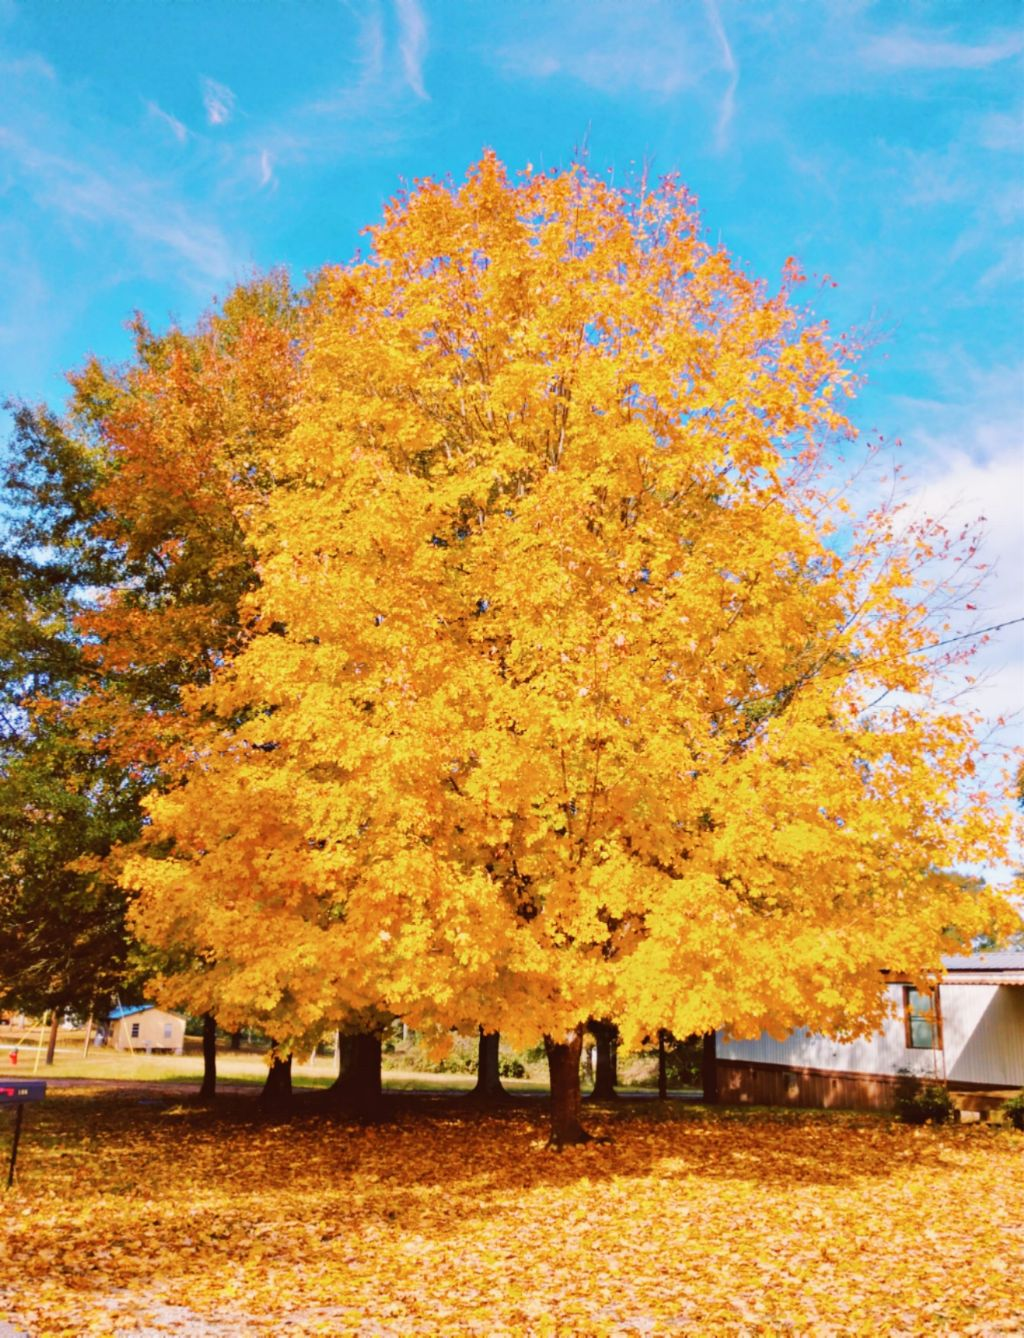 Fall colors - #freetoedit #fall #autumn #colorful #tree #yellow #gold #myphoto #nature #outdoors #natutelover #remixit